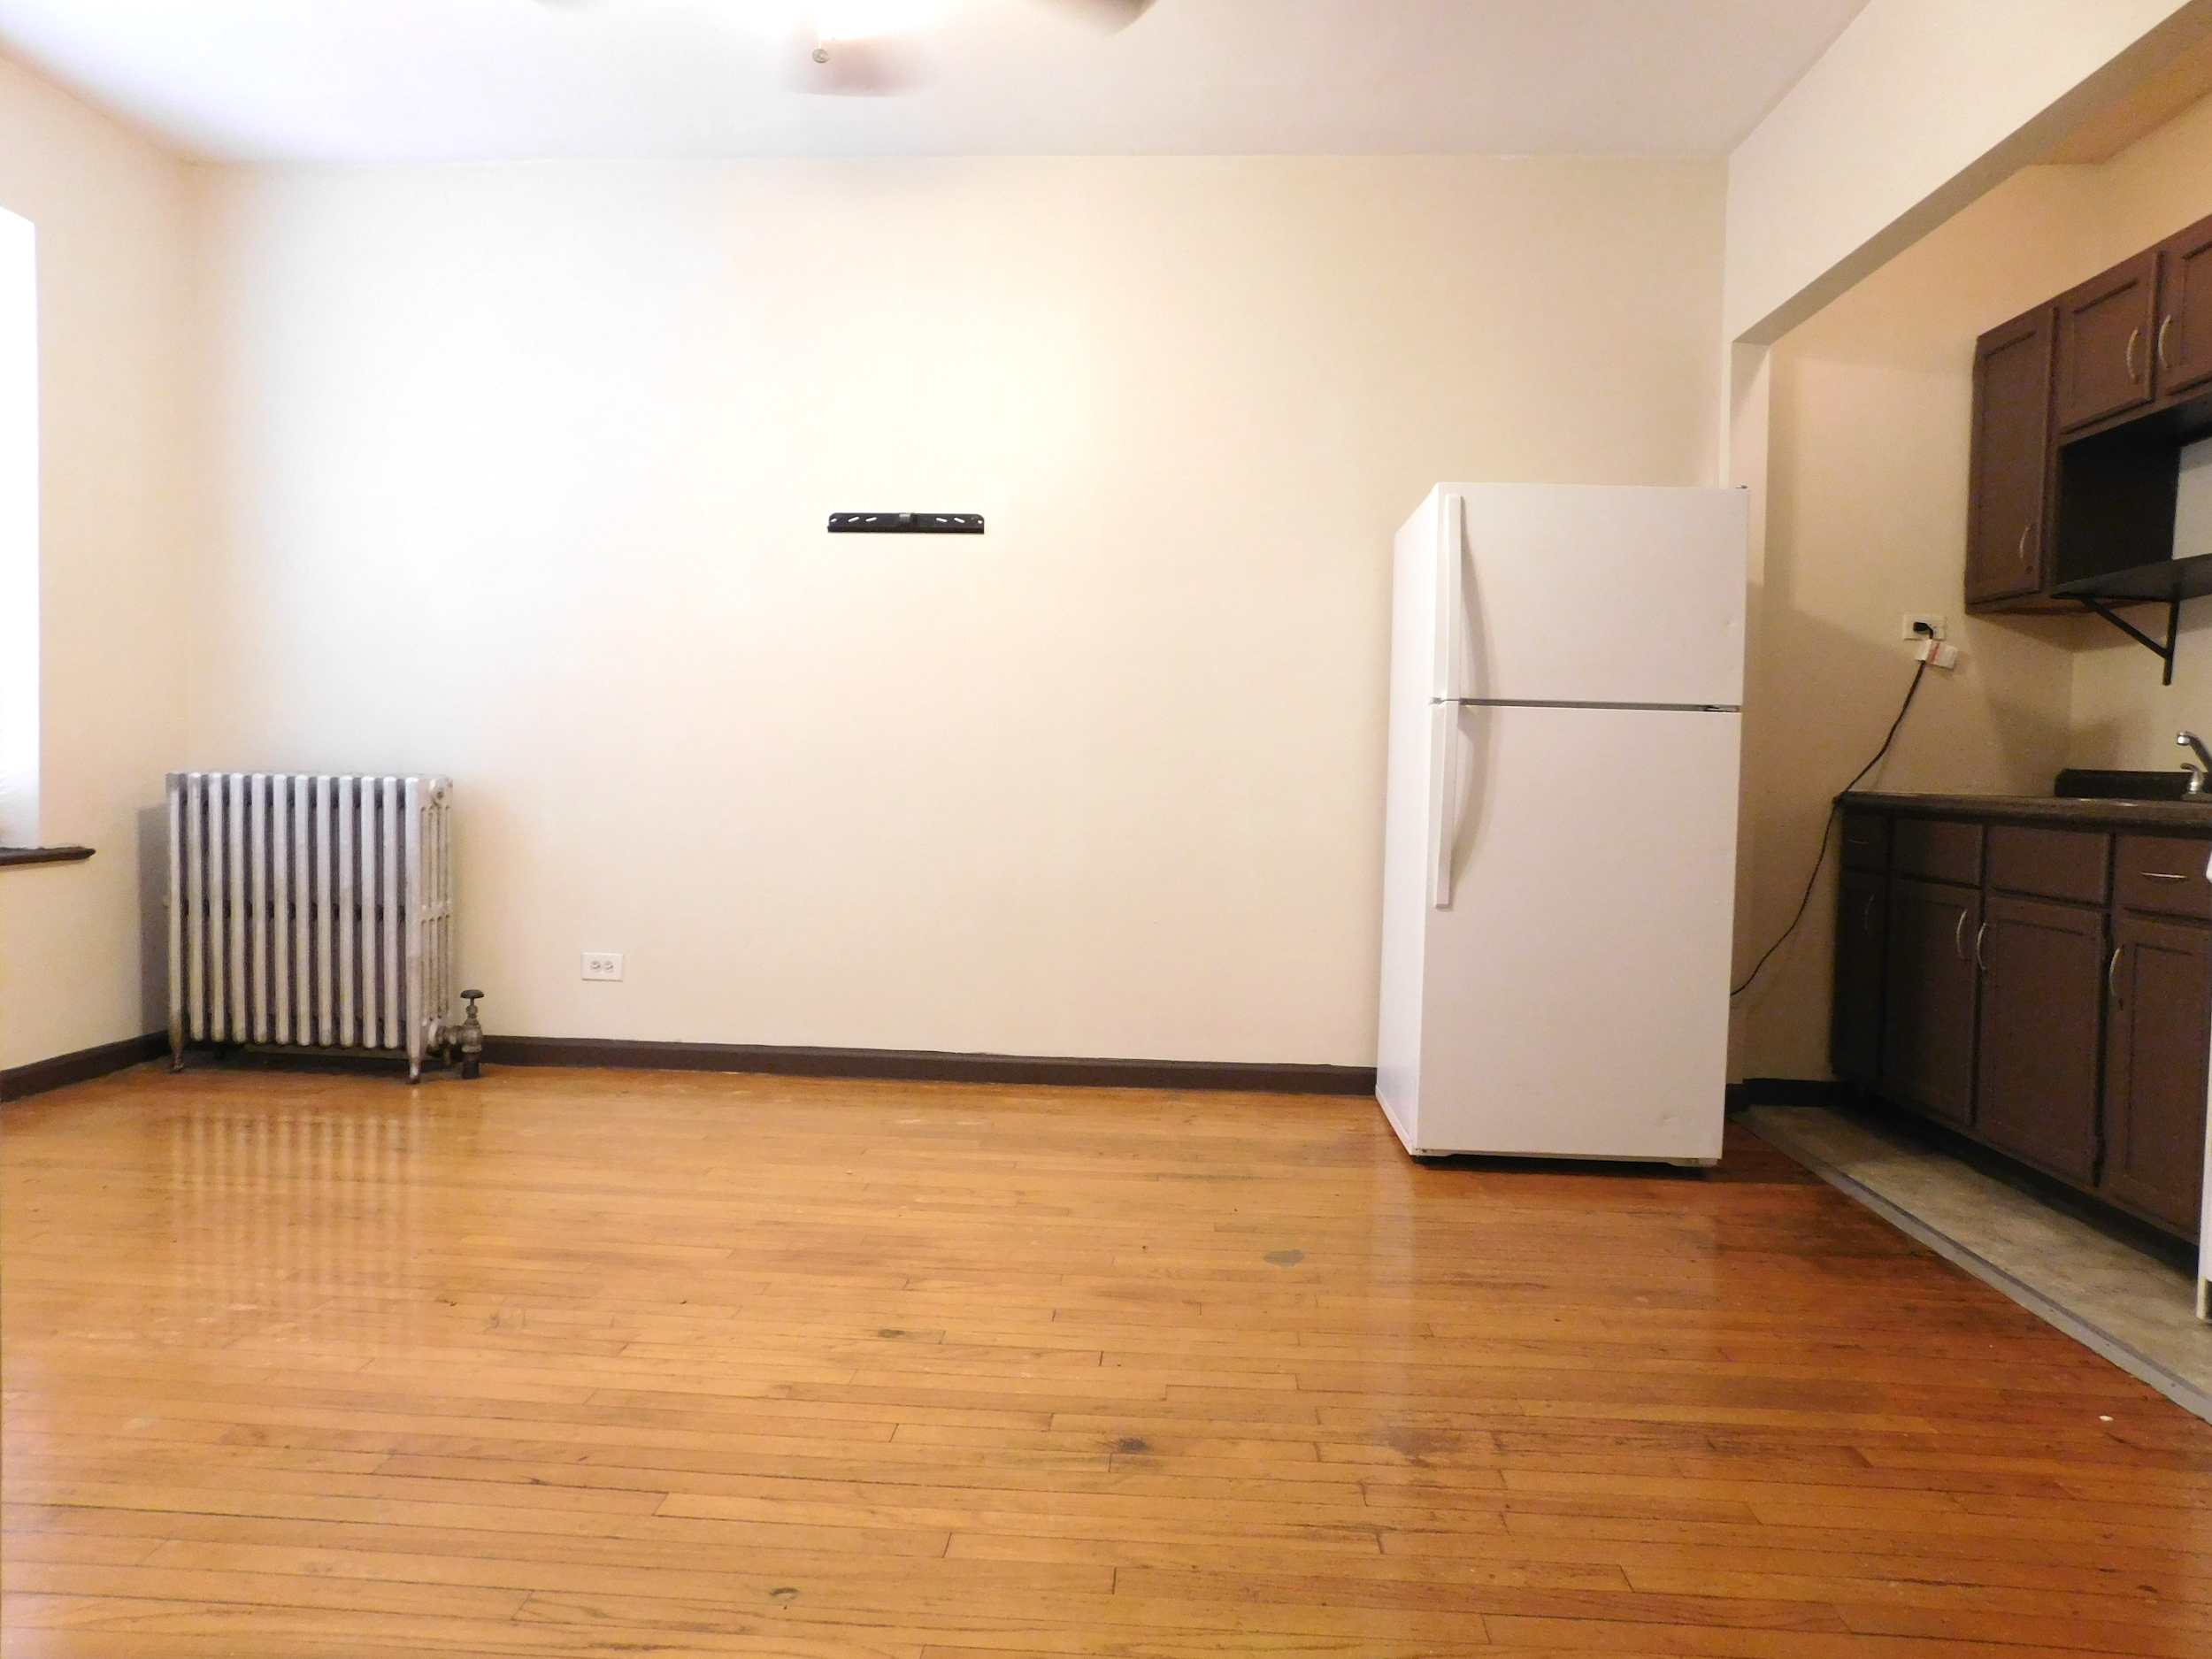 Living Room of Studio Apartment at 5412 W Ferdinand, Chicago 60644